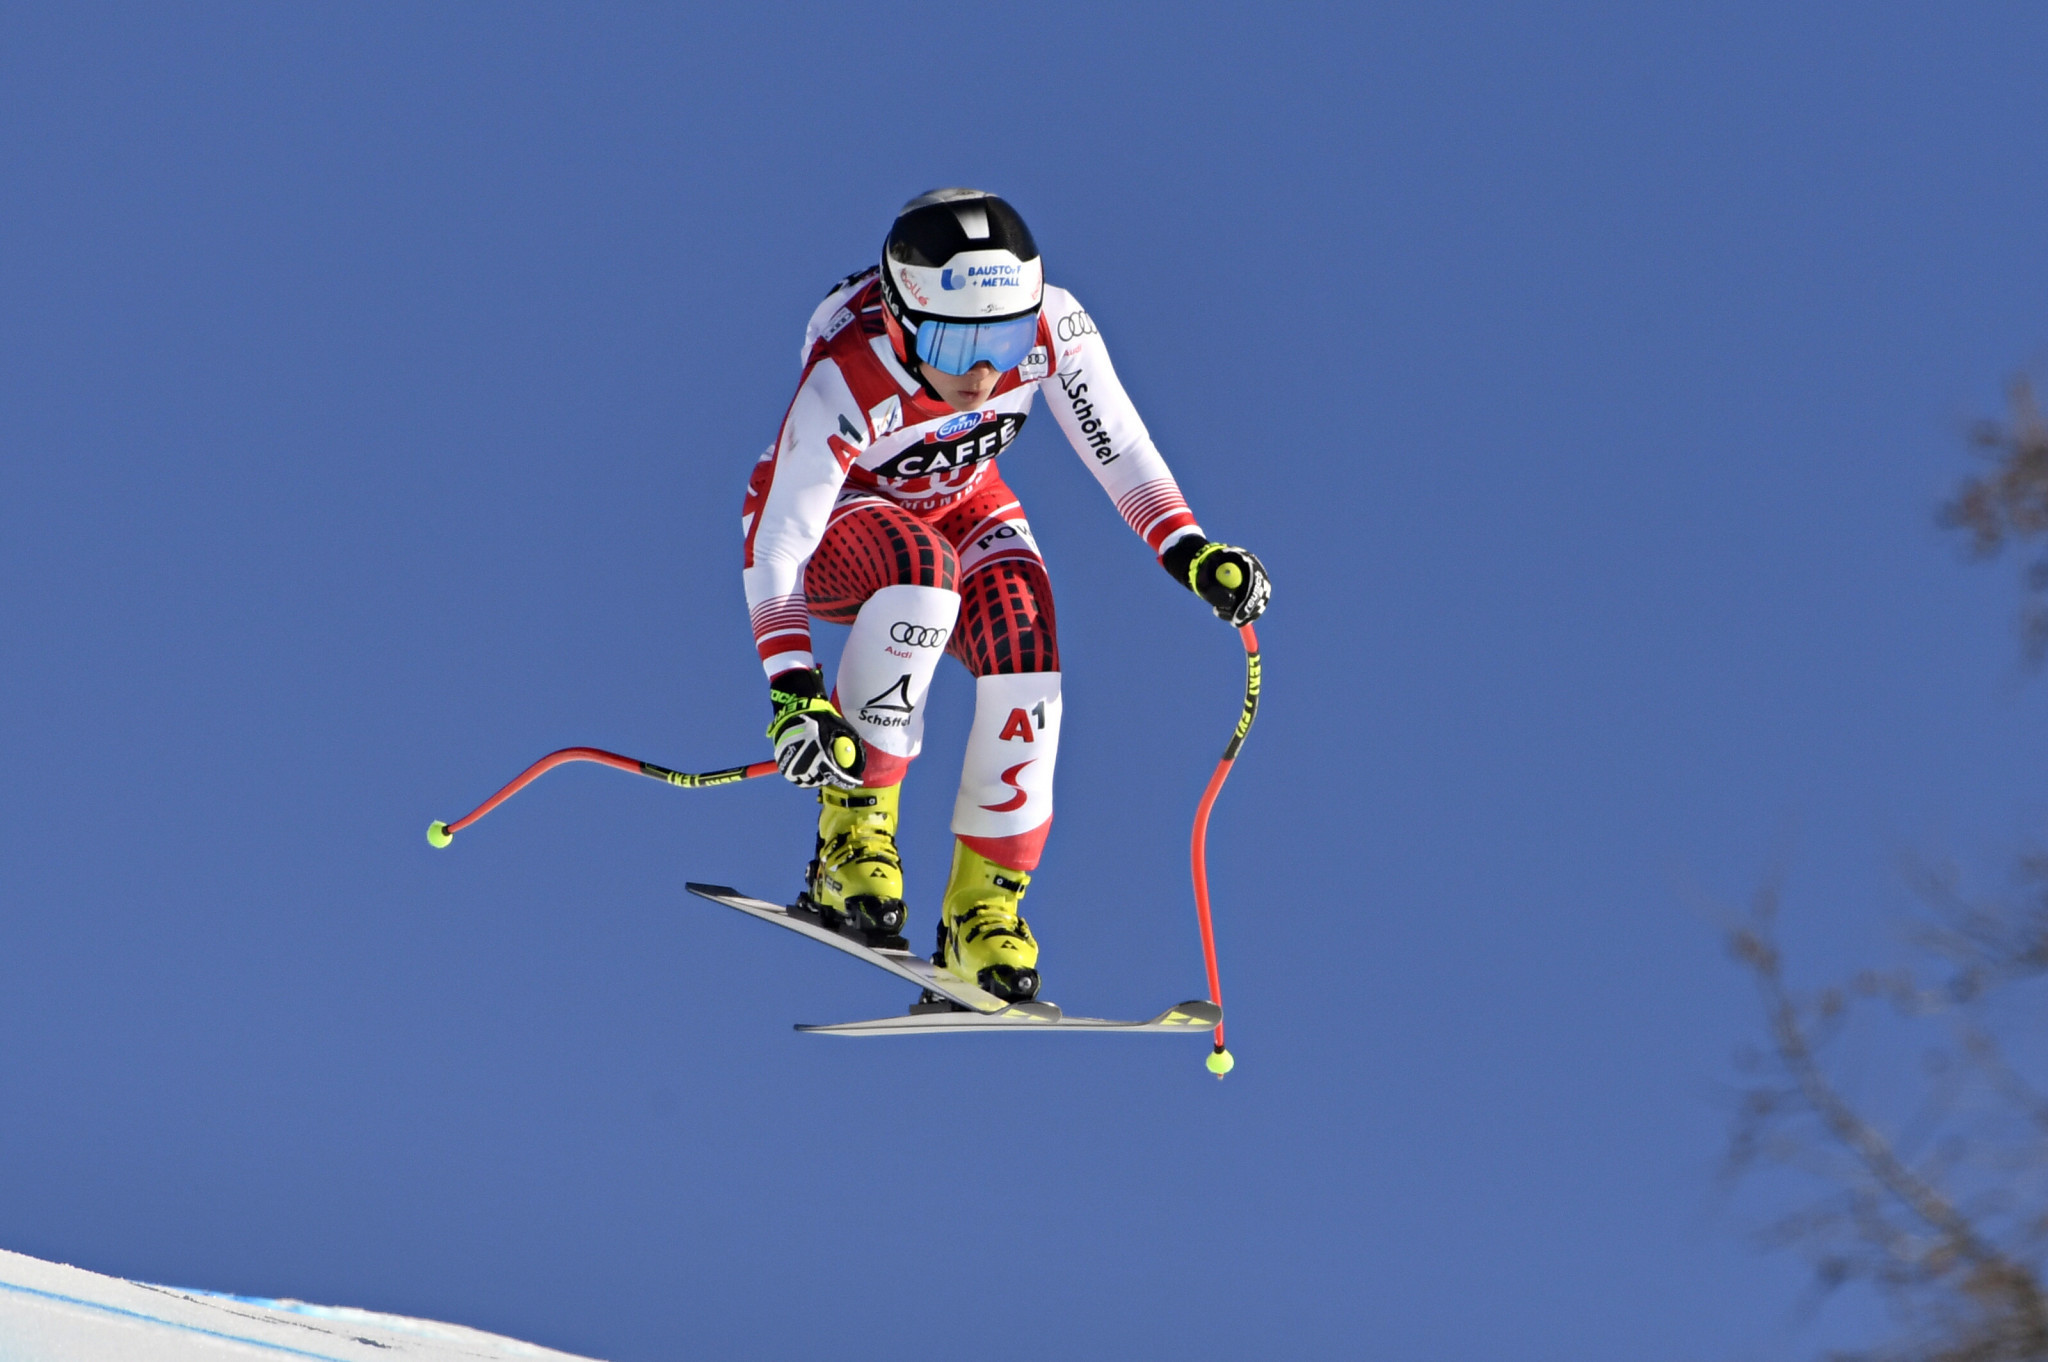 Austria's Nicole Schmidhofer will be looking for another good performance in the women's downhill at the FIS Alpine Skiing World Cup in Rosa Khutor as she seeks to win the title ©Getty Images